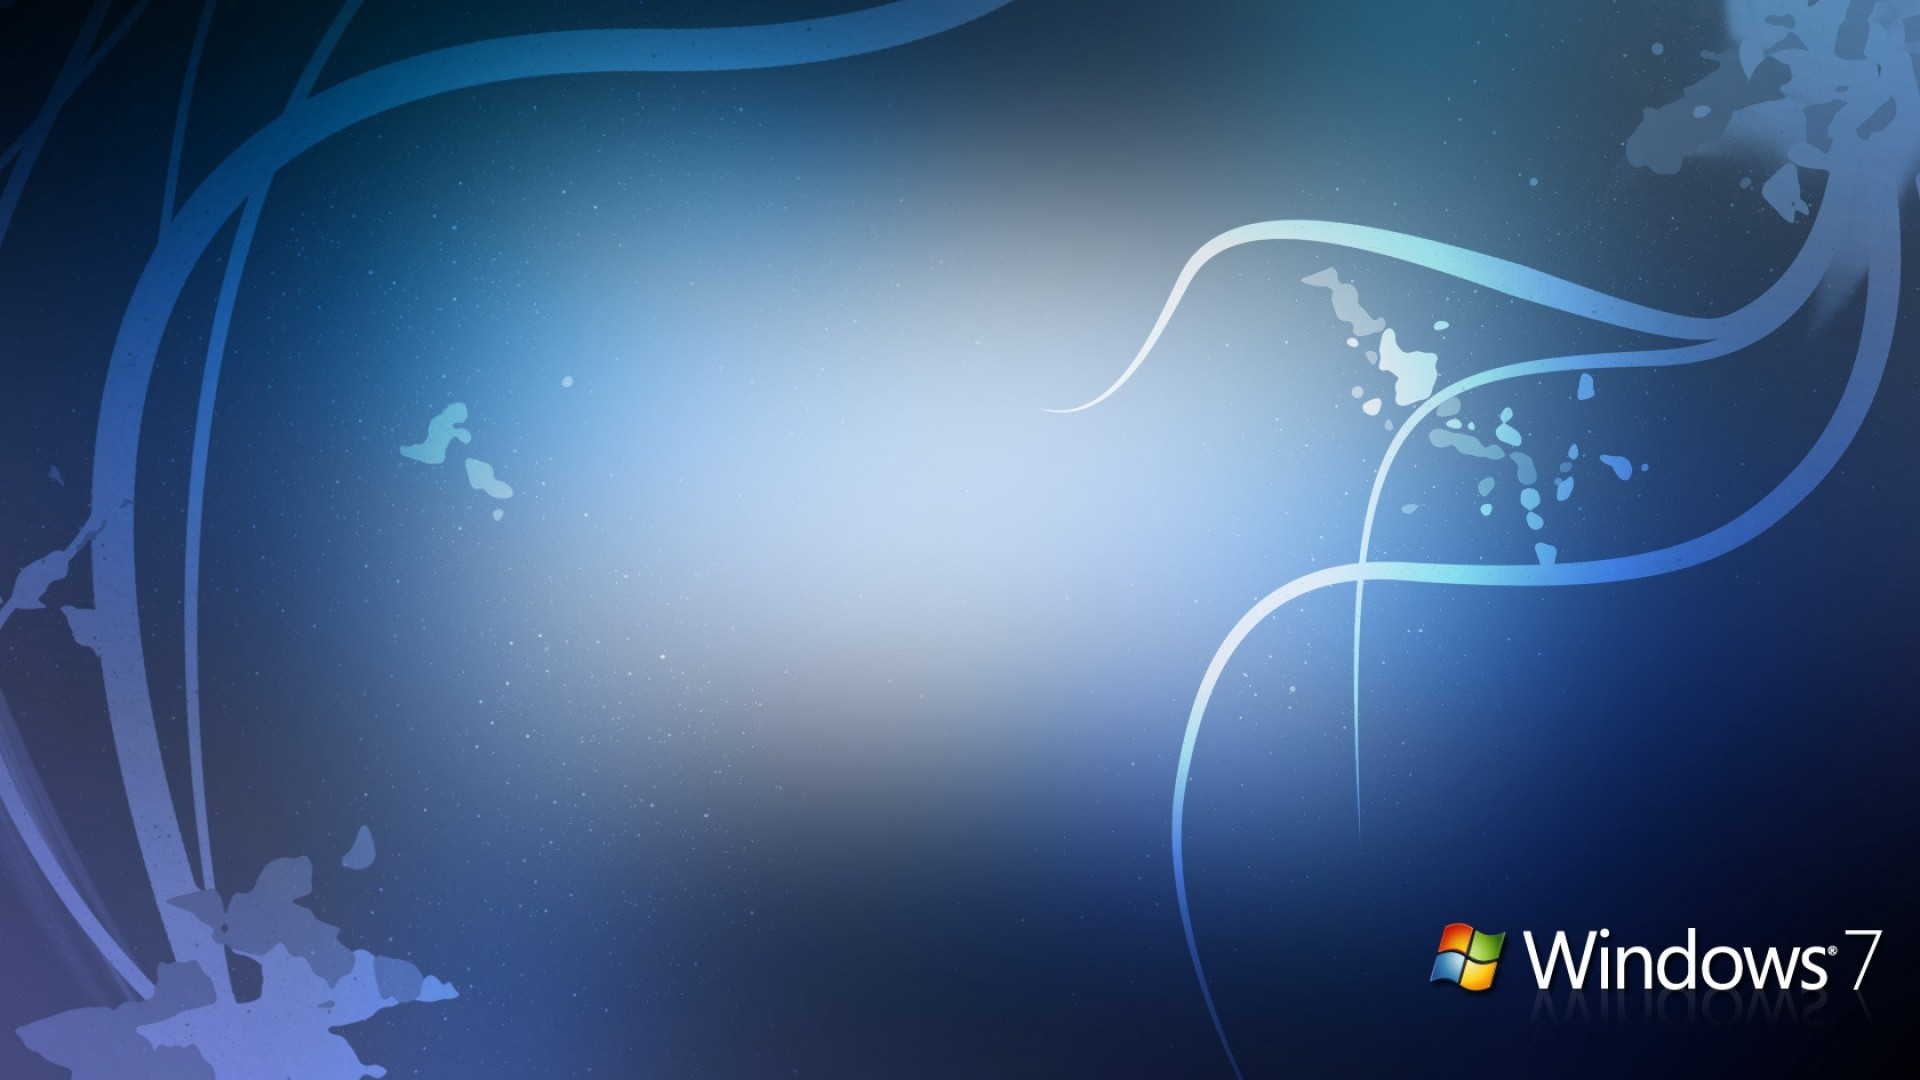 Windows 7 Background HD 78 images 1920x1080